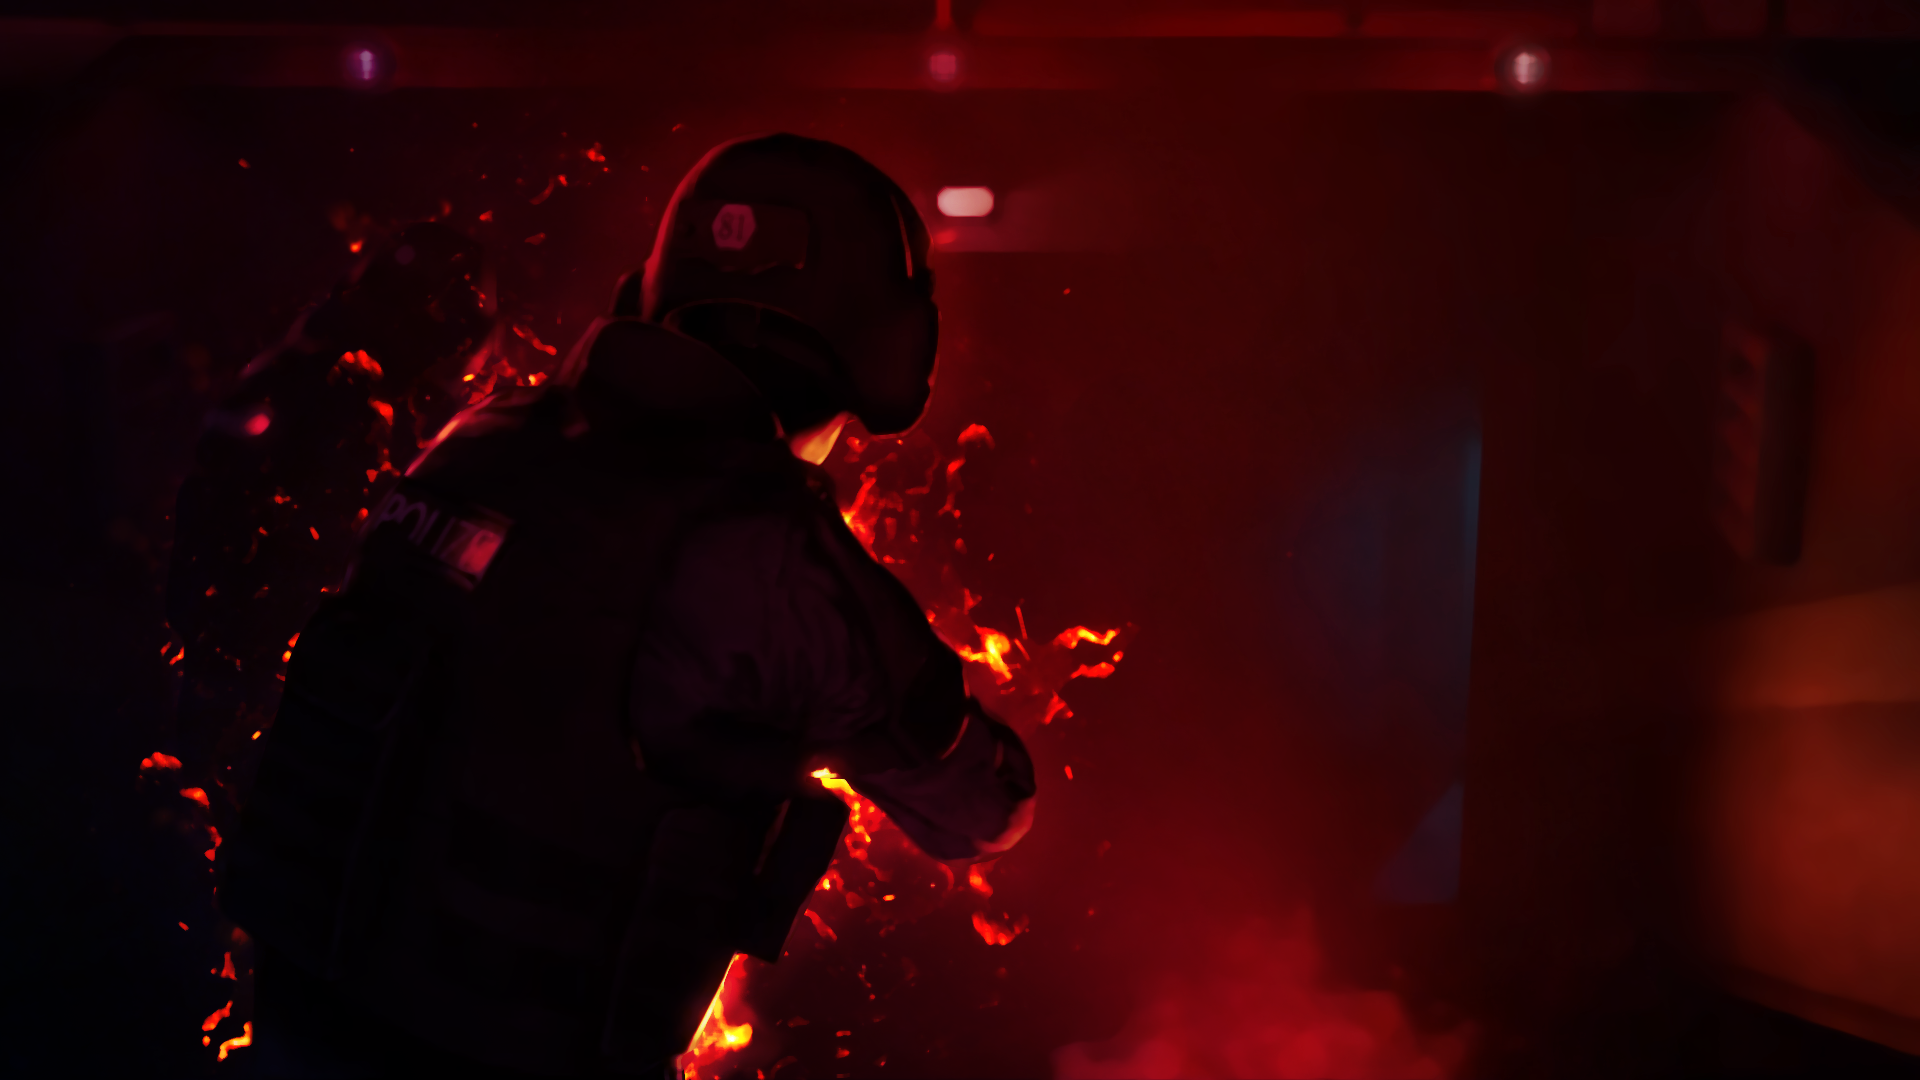 Ct's on Fire - Wallpaper